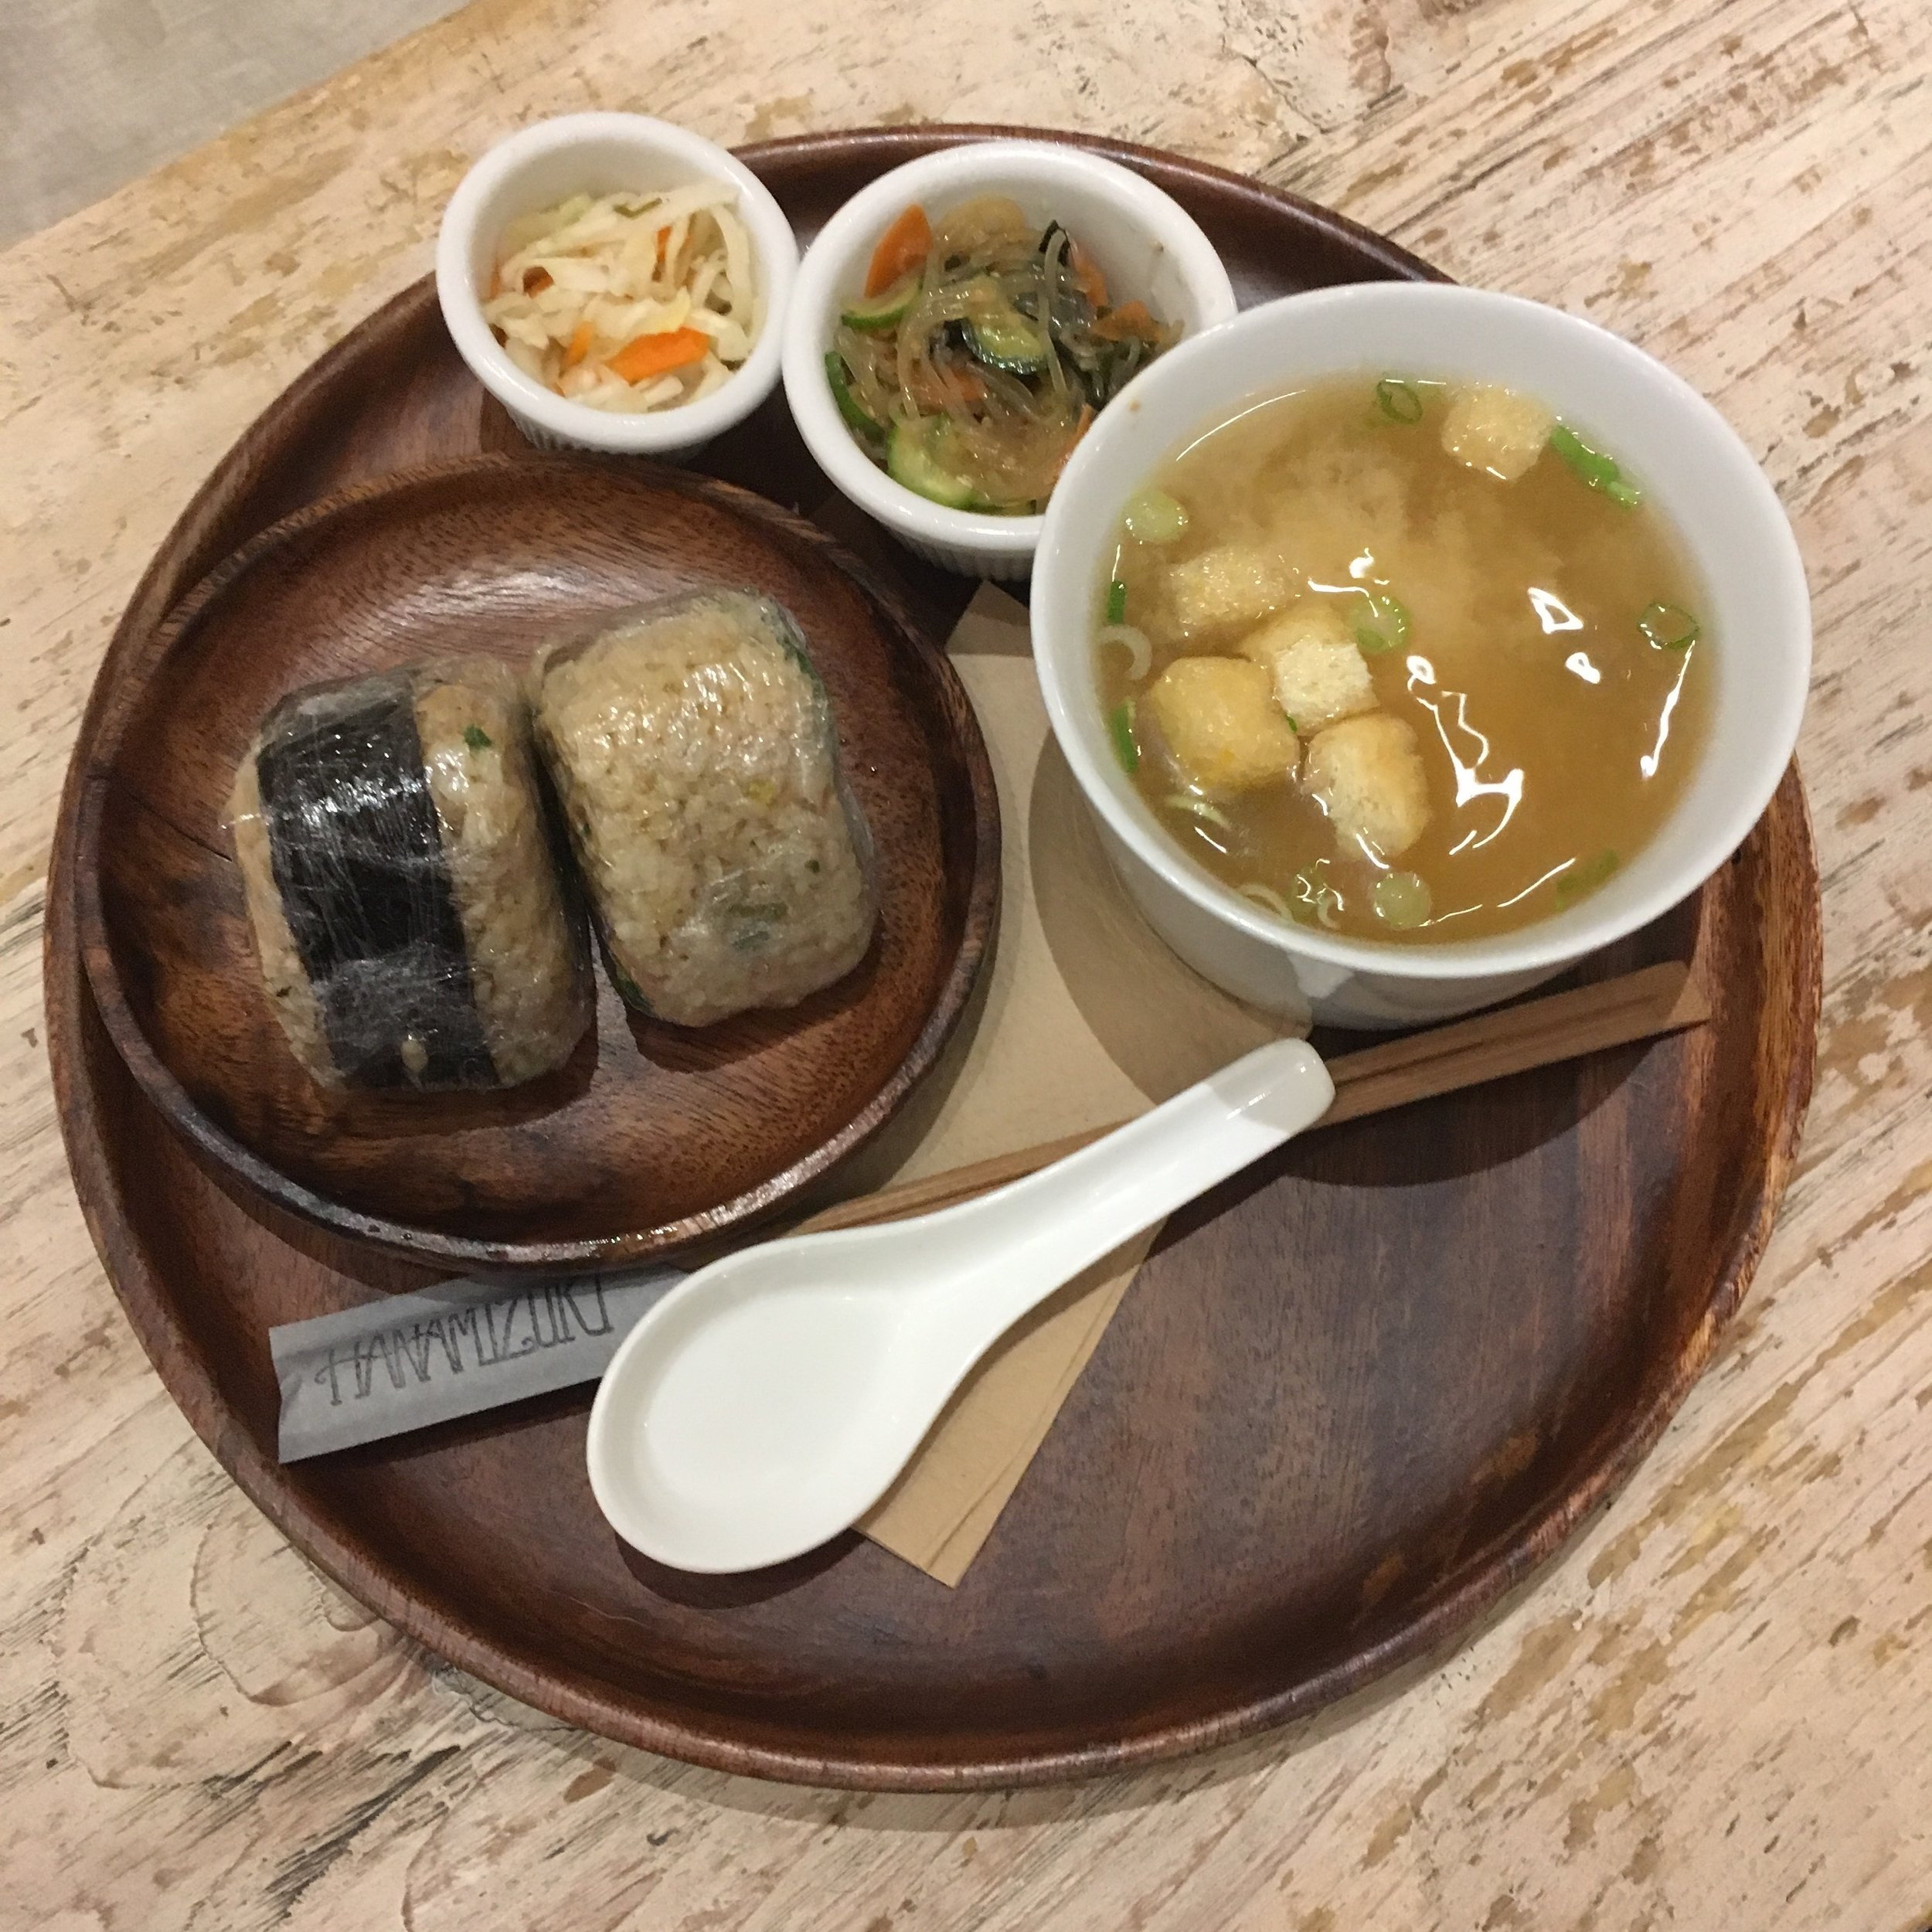 Calming lunch special ($13)